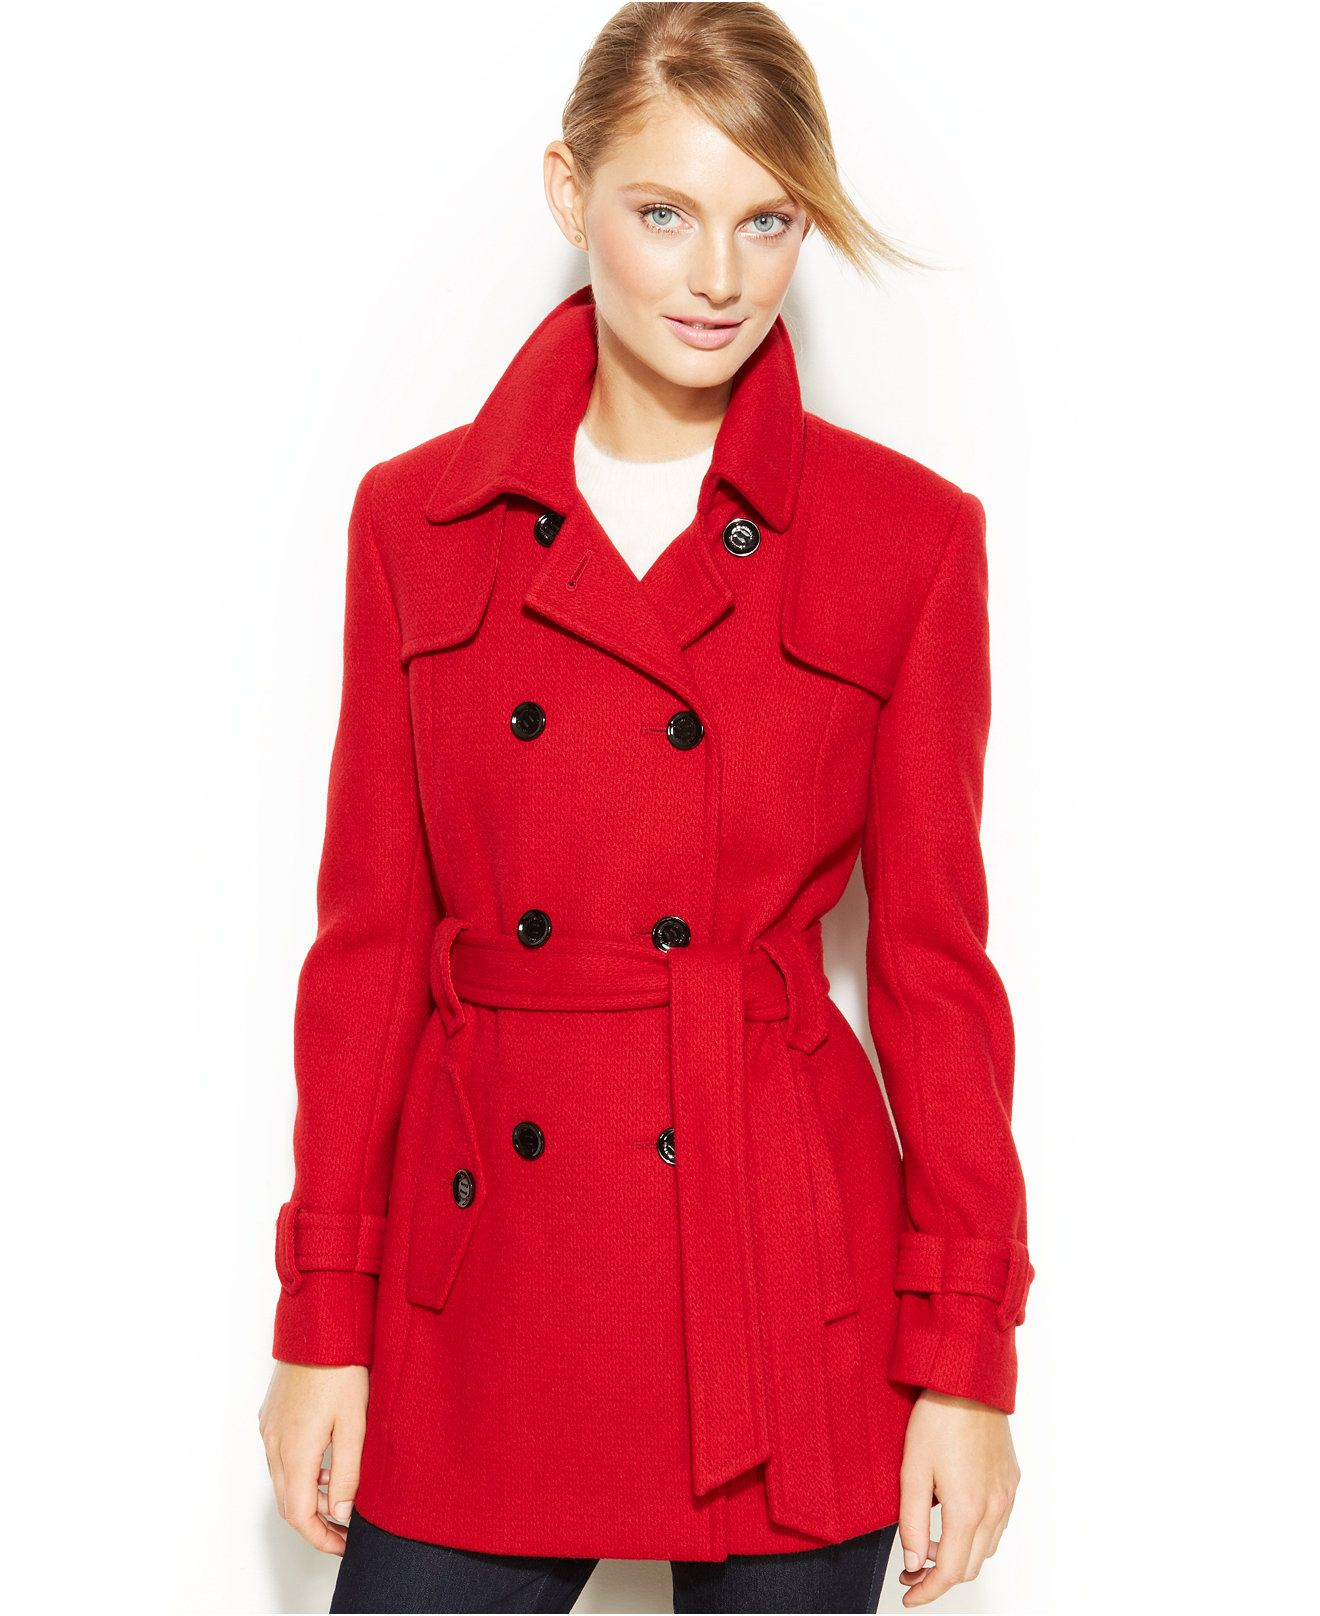 fab1c059335ee Calvin Klein Double-Breasted Belted Pea Coat - Coats - Women - Macy s